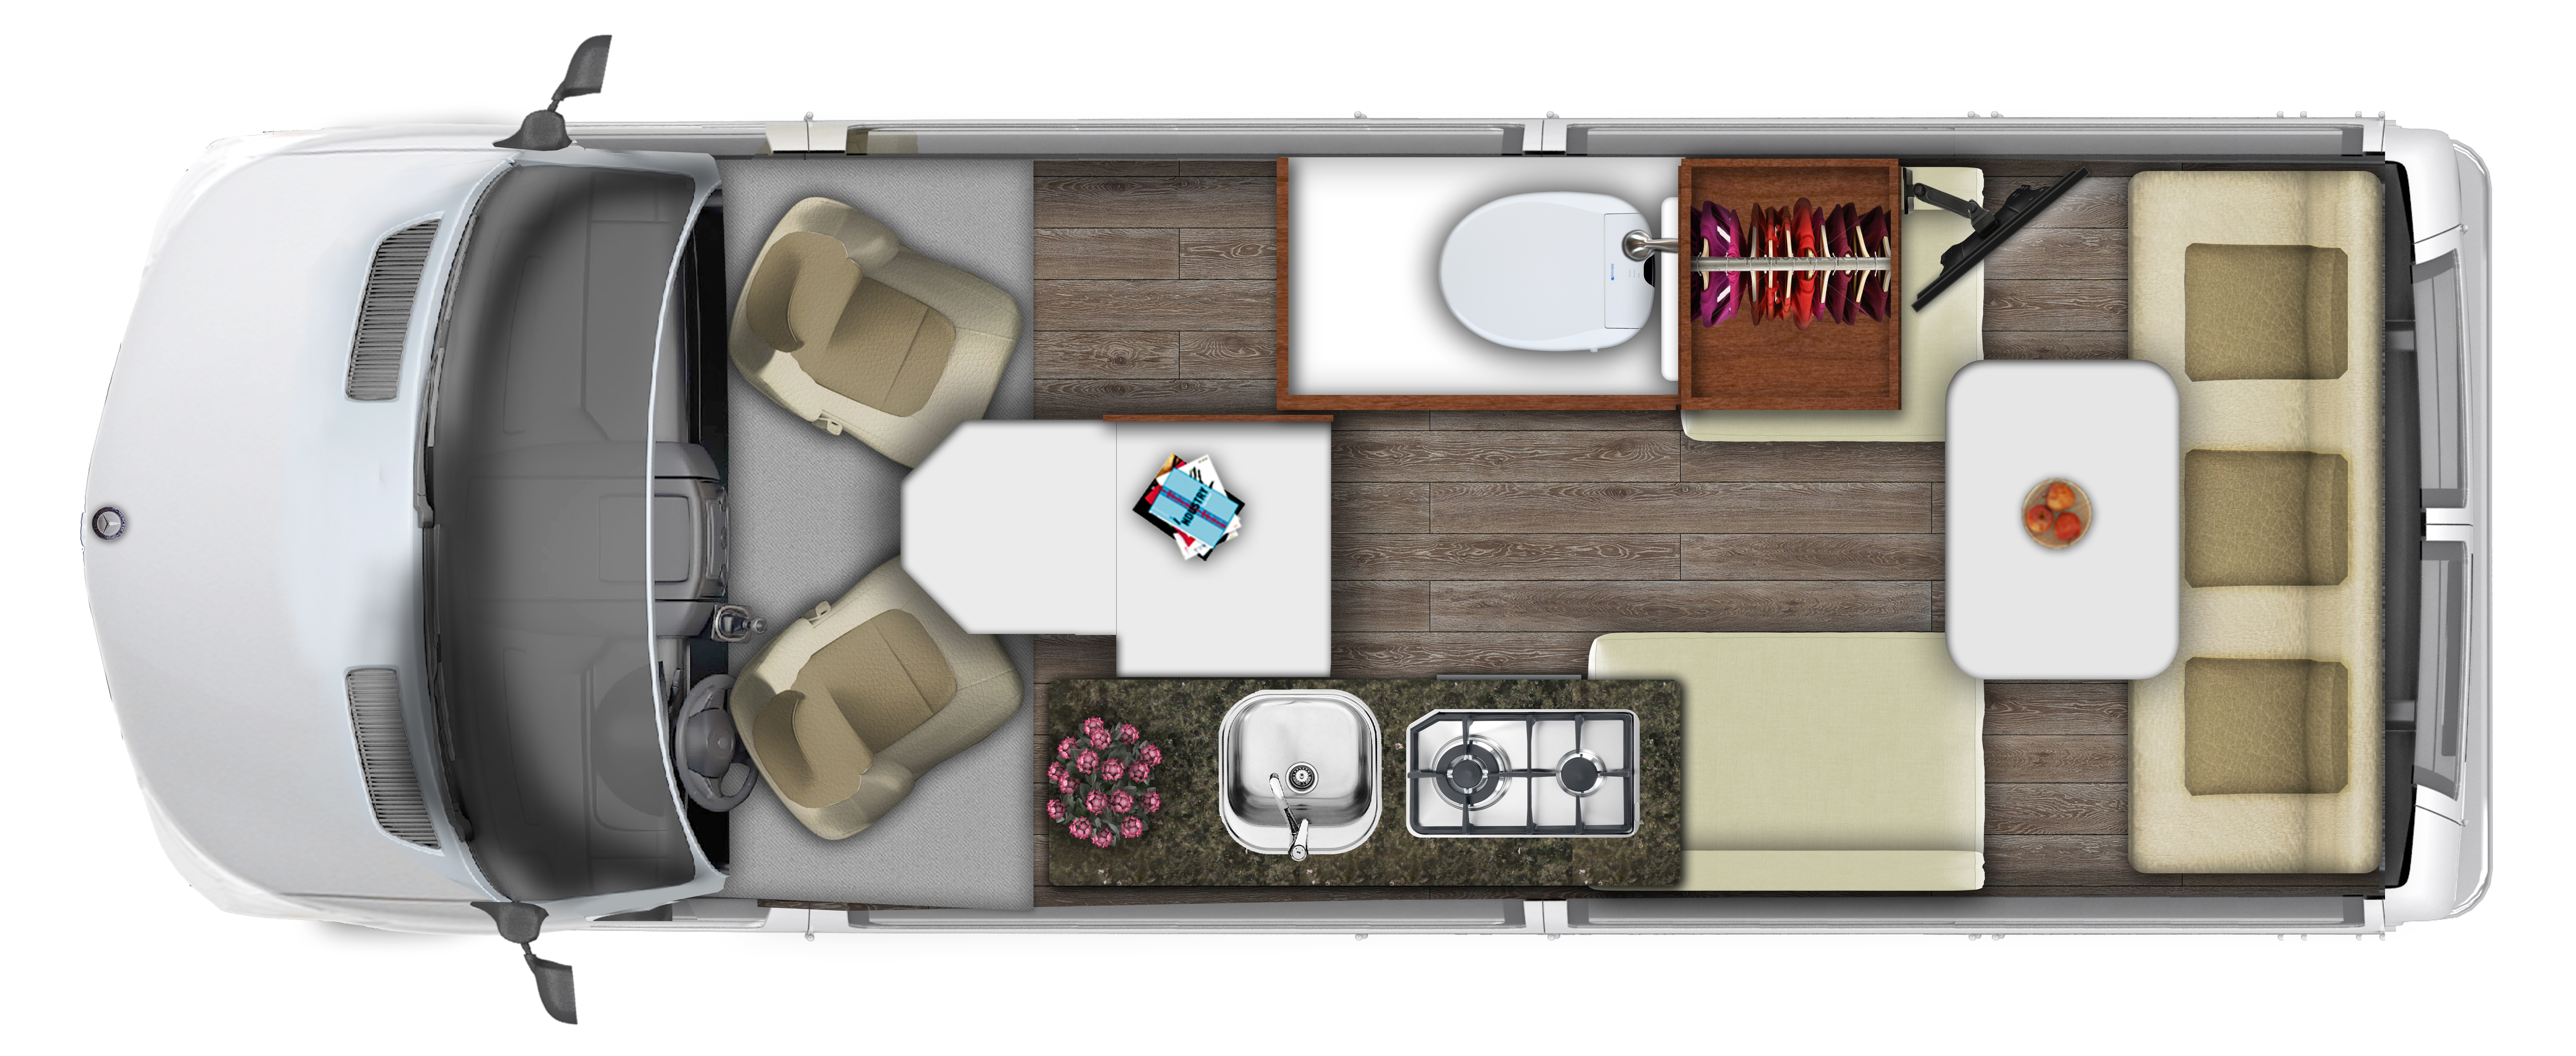 2019 ROADTREK SS AGILE 4X4 Floor Plan